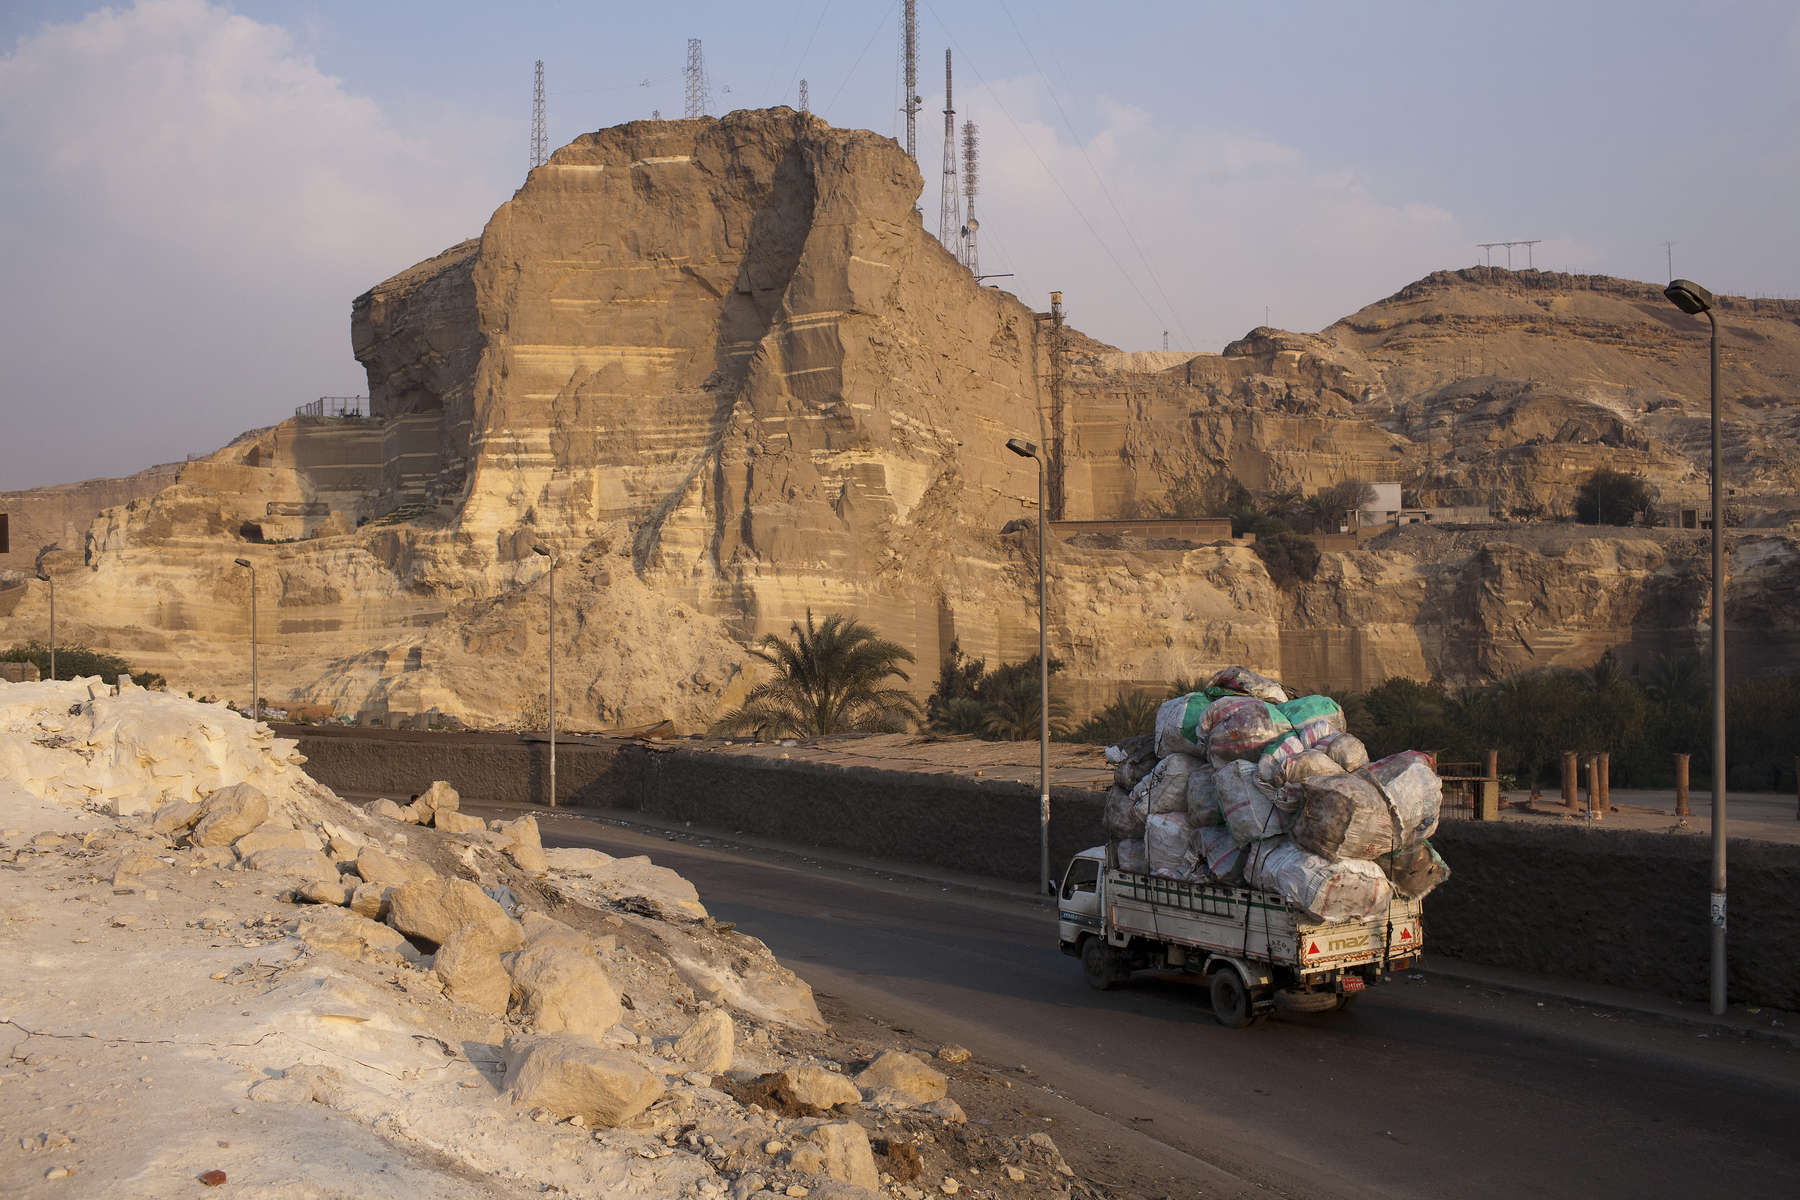 """A Zabaleen garbage collection truck returns to the Cairo suburb of Moqqatam at the end of a shift collecting trash from the cities streets and homes. Zabaleen, which literally means """"garbage collectors"""" have assumed a semi-official role as Cairo's binmen. The Zabaleen men usually do two shifts. They leave at about four or five in the morning, and again at about nine. The poorer Zabaleen use donkey carts, but many earn enough to rent trucks. They then take the garbage back to their homes for the women to pick through for items to recycle."""